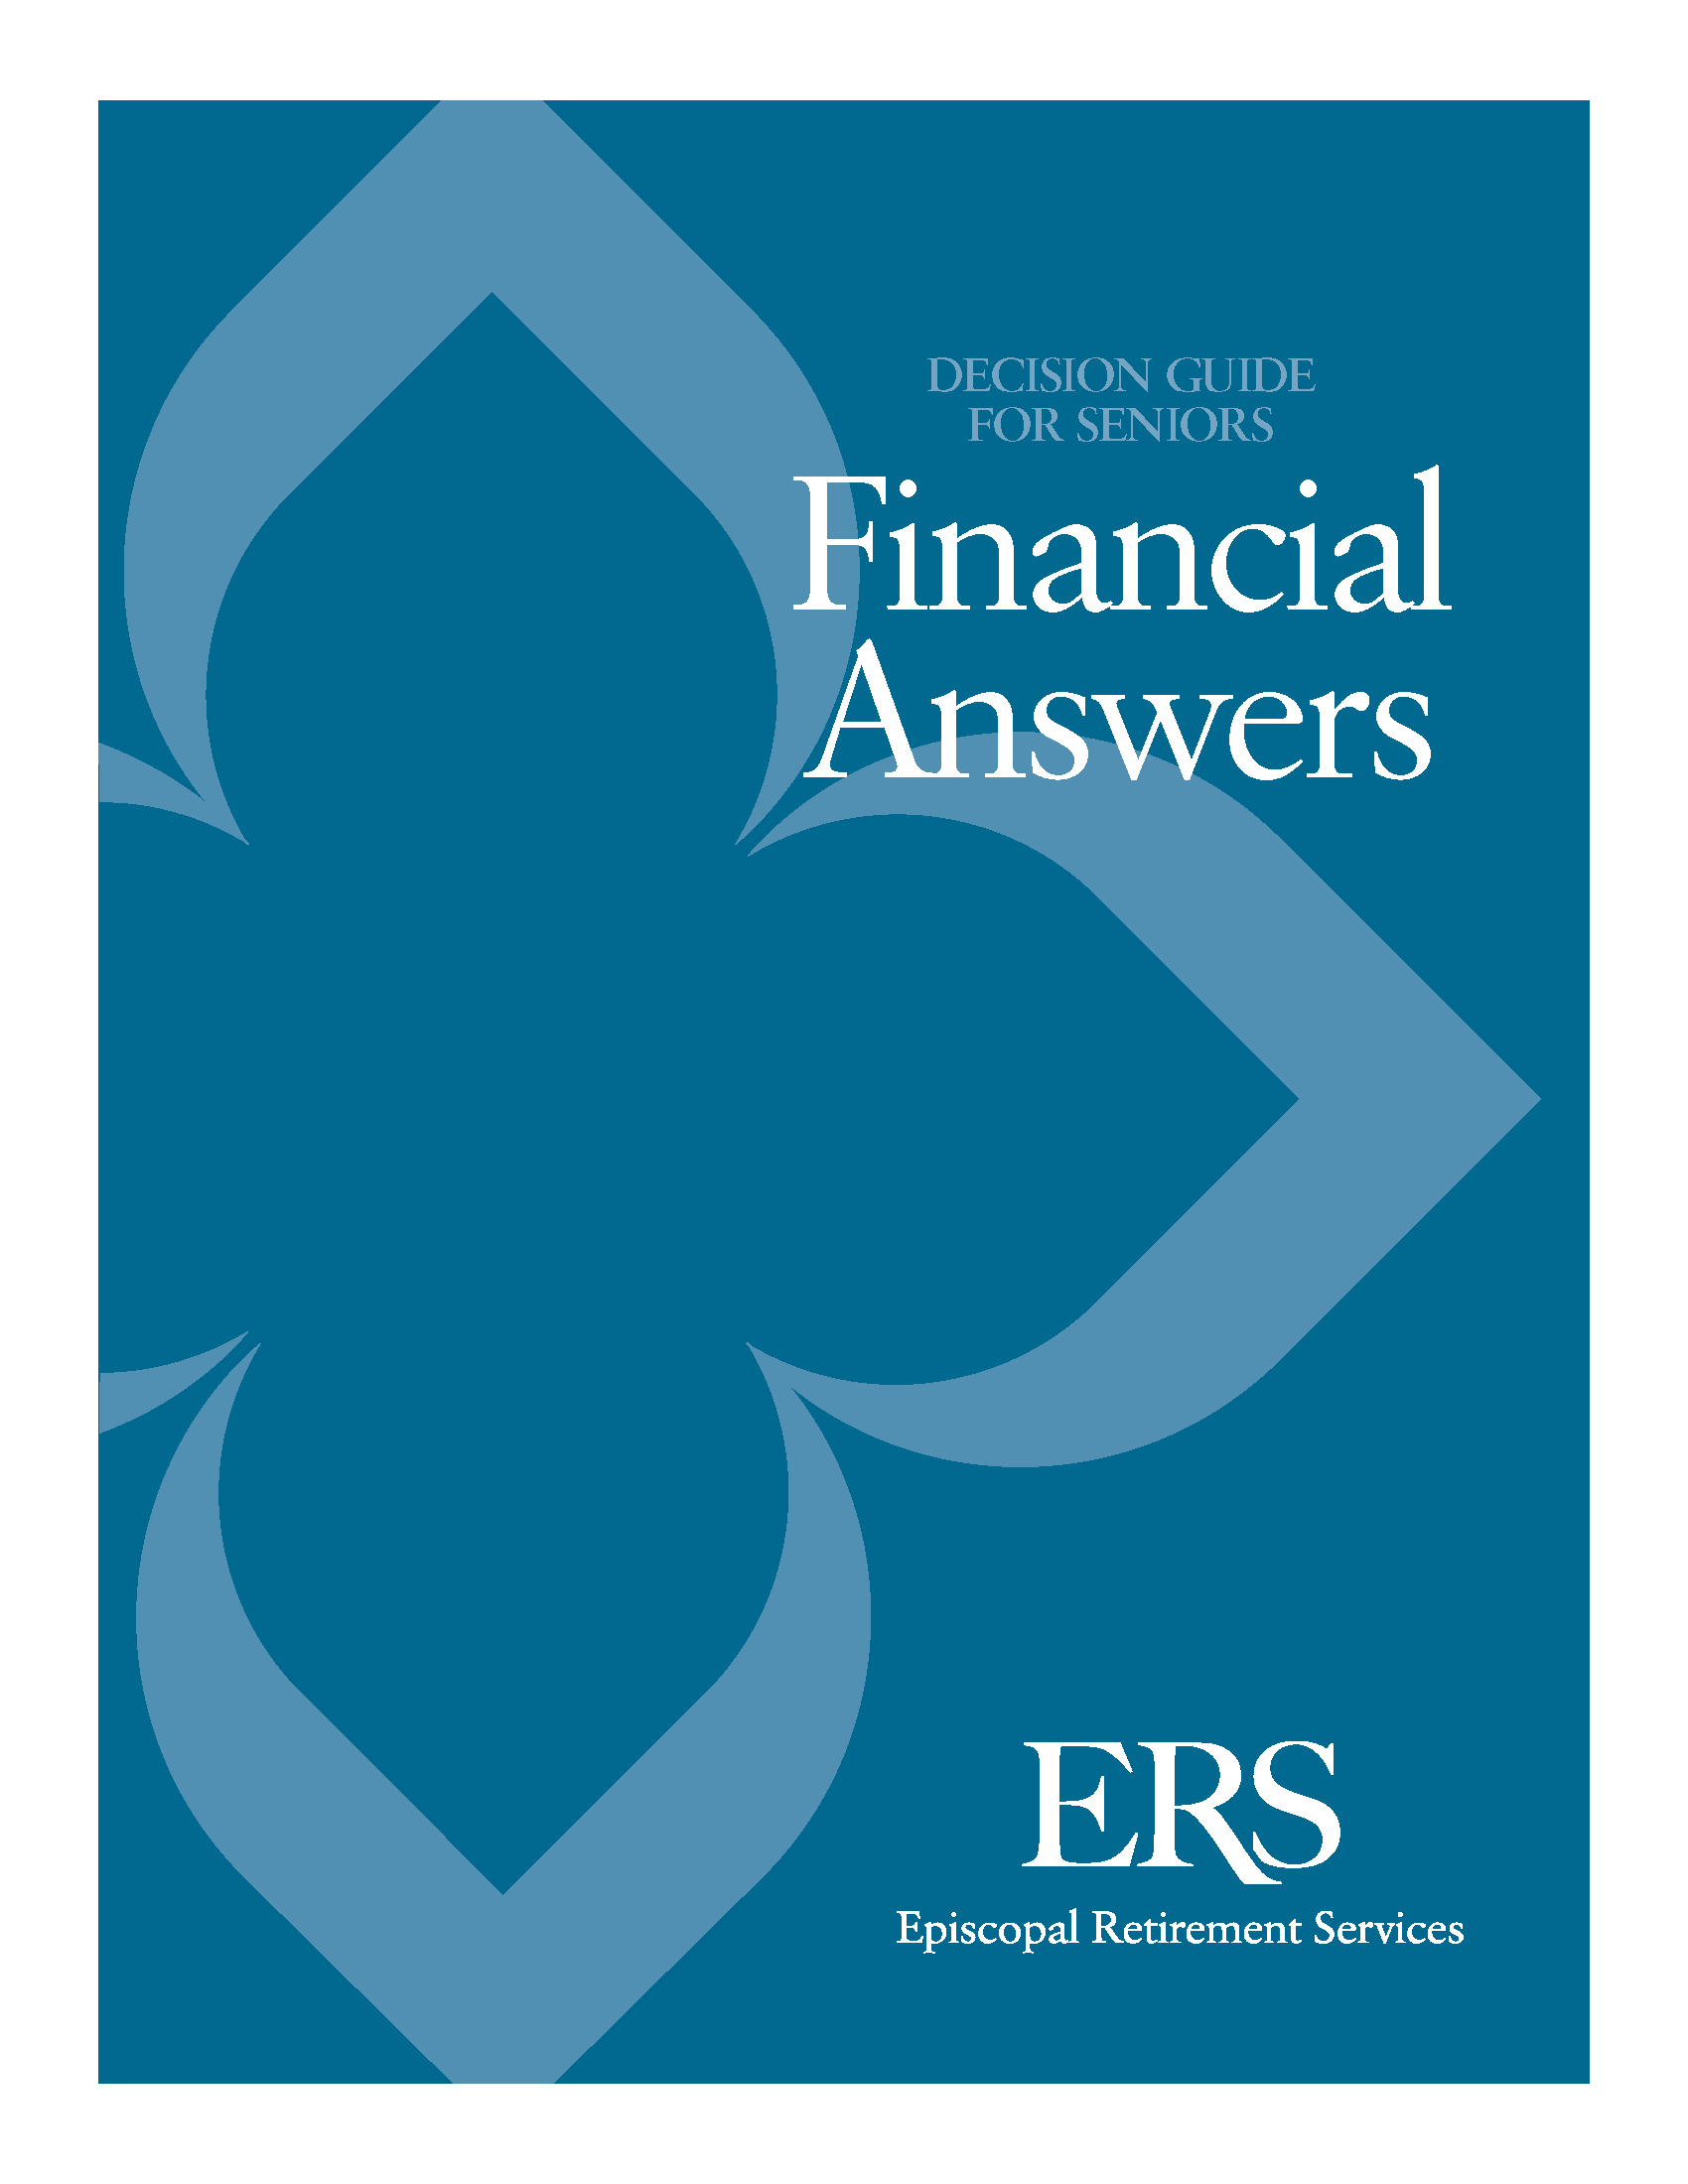 DecisionGuide_FINANCIAL_ANSWERS_SENIORS_Cover_Page_1